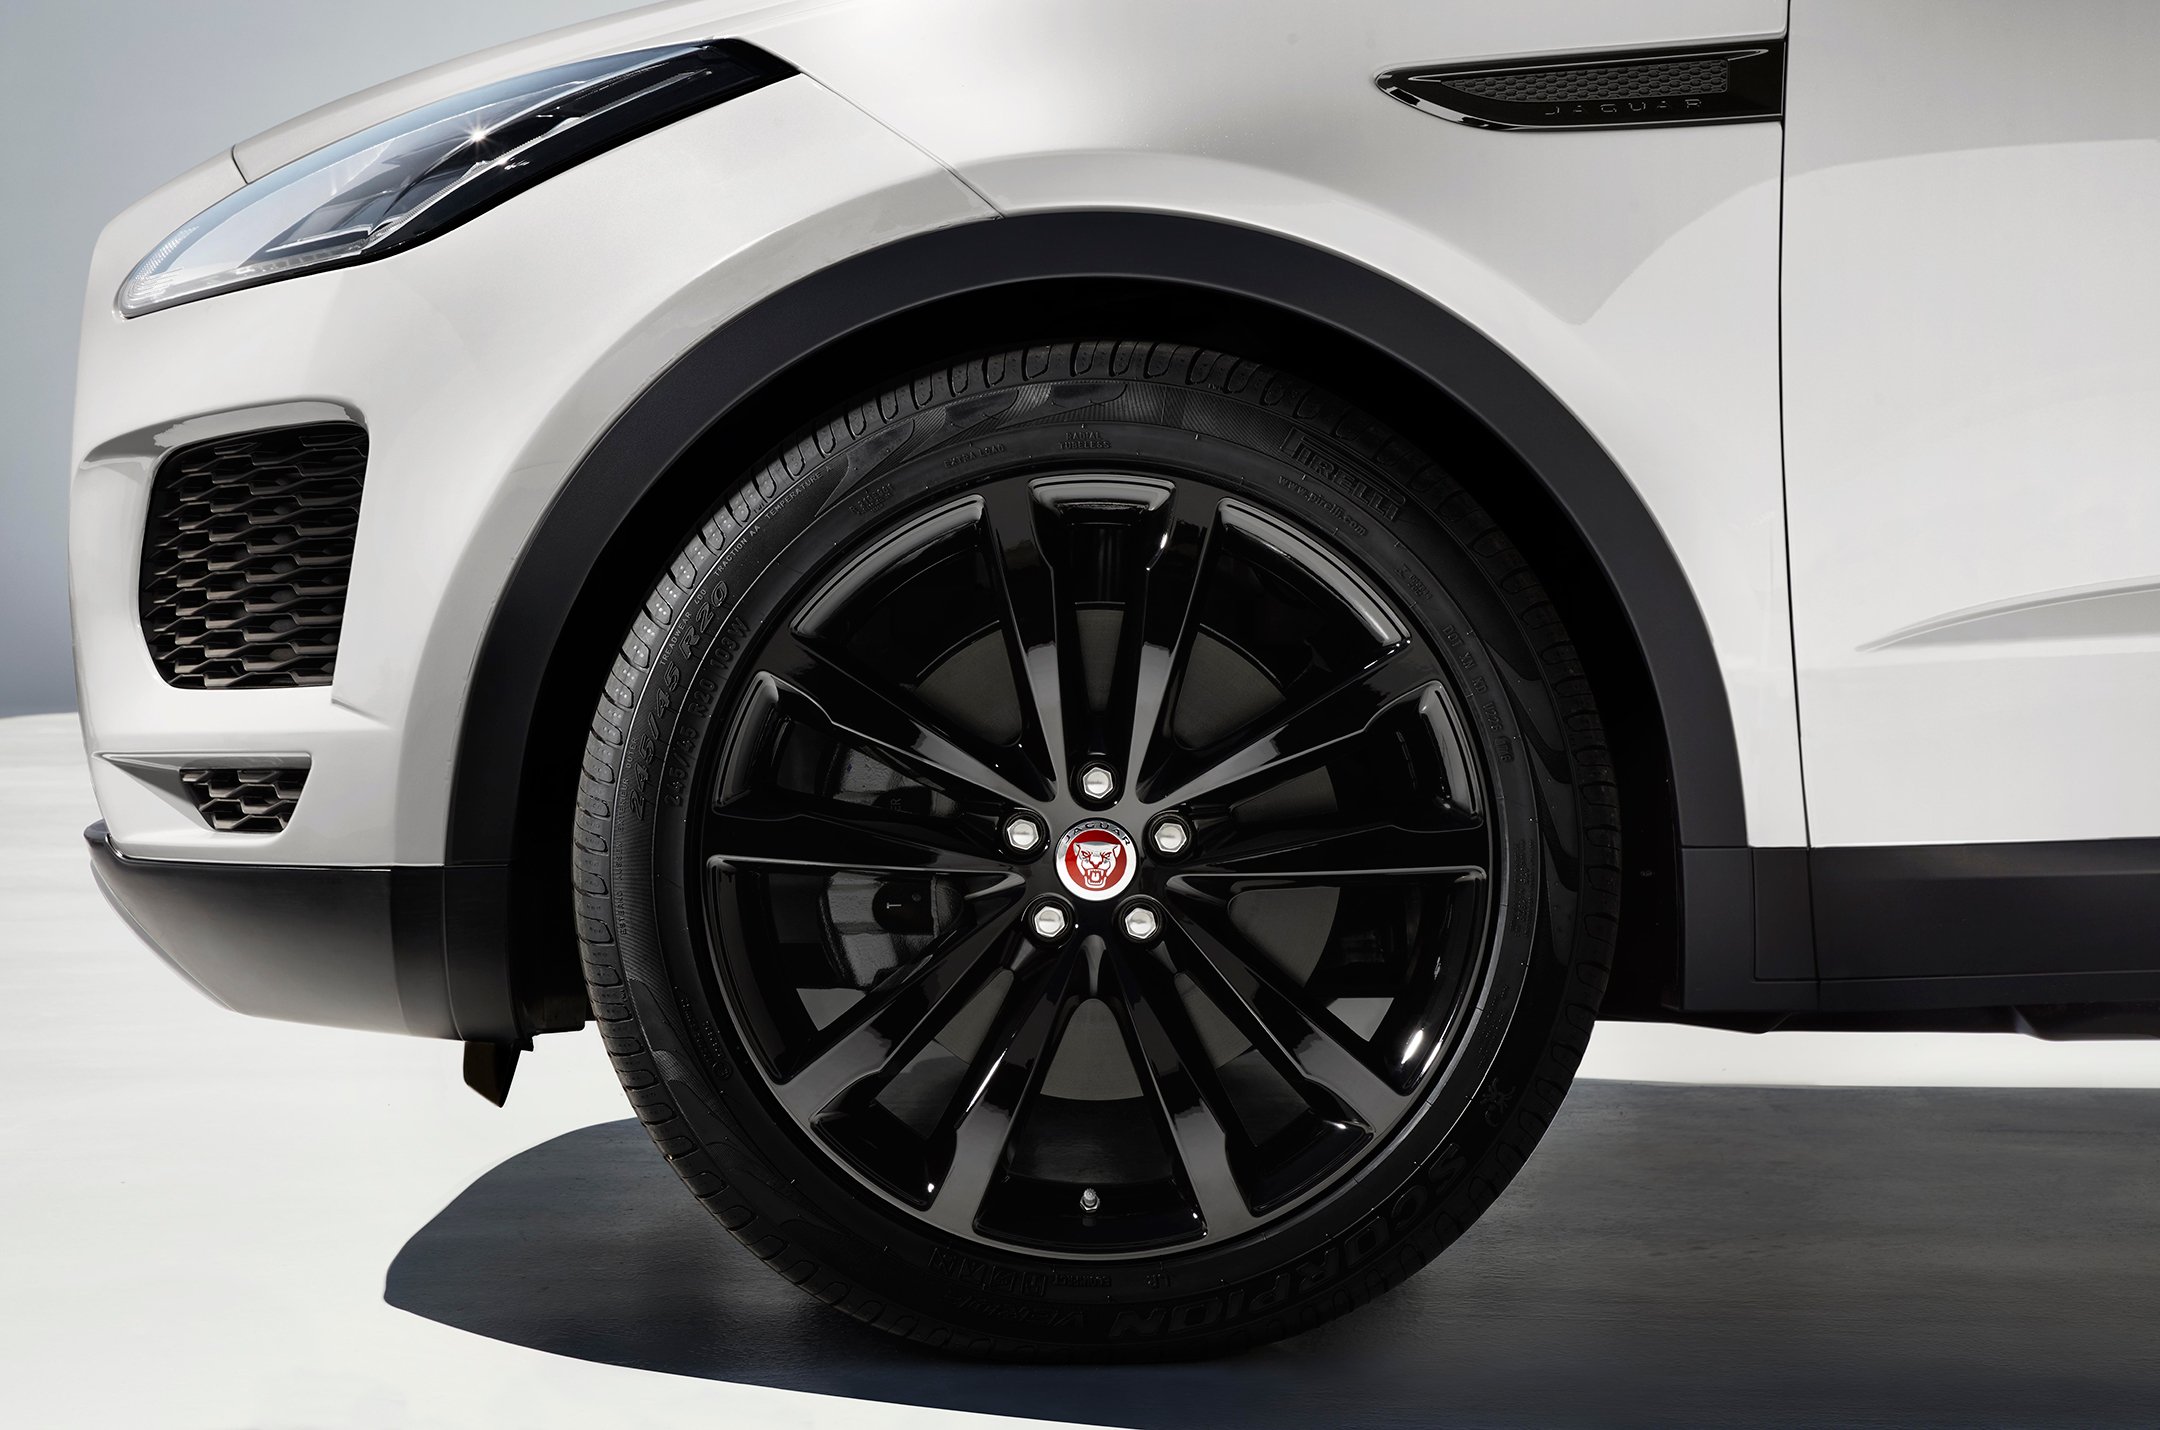 Jaguar E-PACE - 2017 - wheel / jante